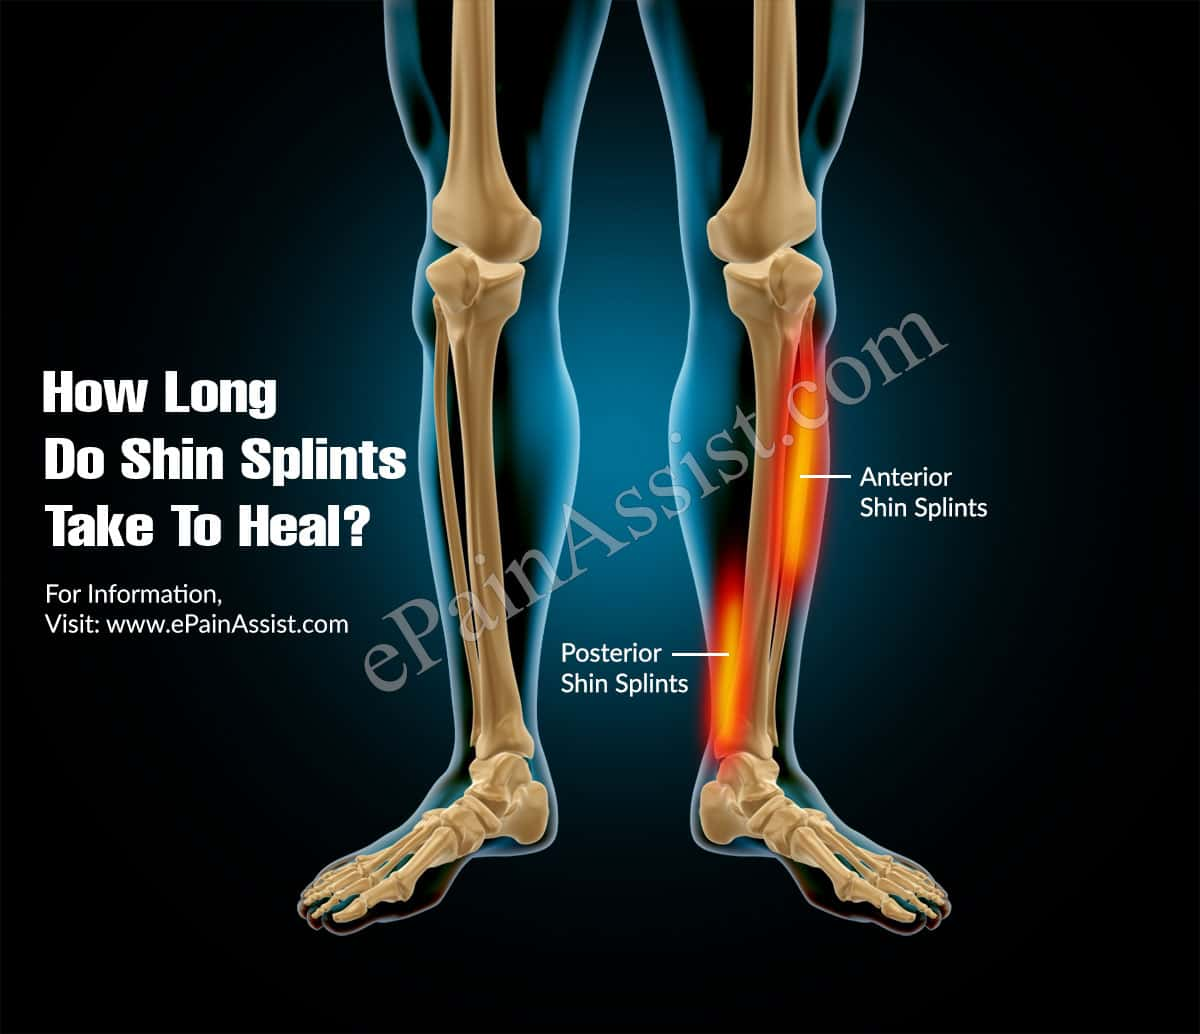 How Long Do Shin Splints Take To Heal?